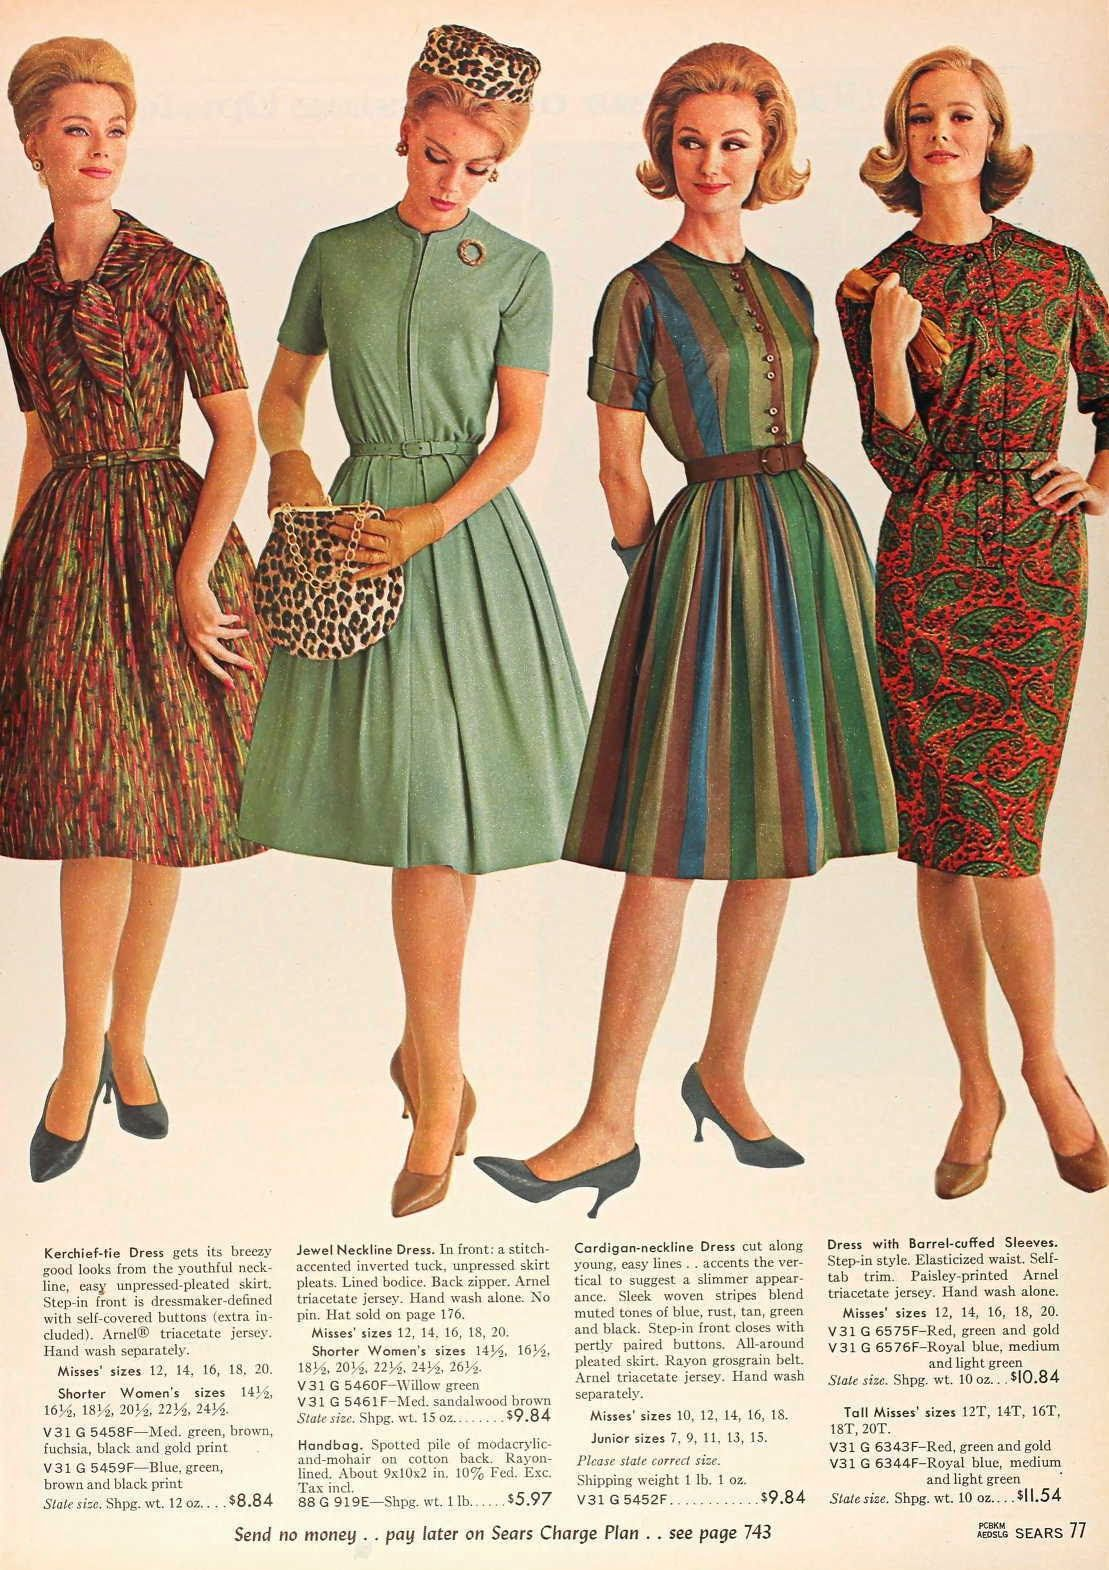 60 39 S Fashion Google Search 1950 39 S Beginning 1960 39 S Couture Fashion Pinterest 60 S